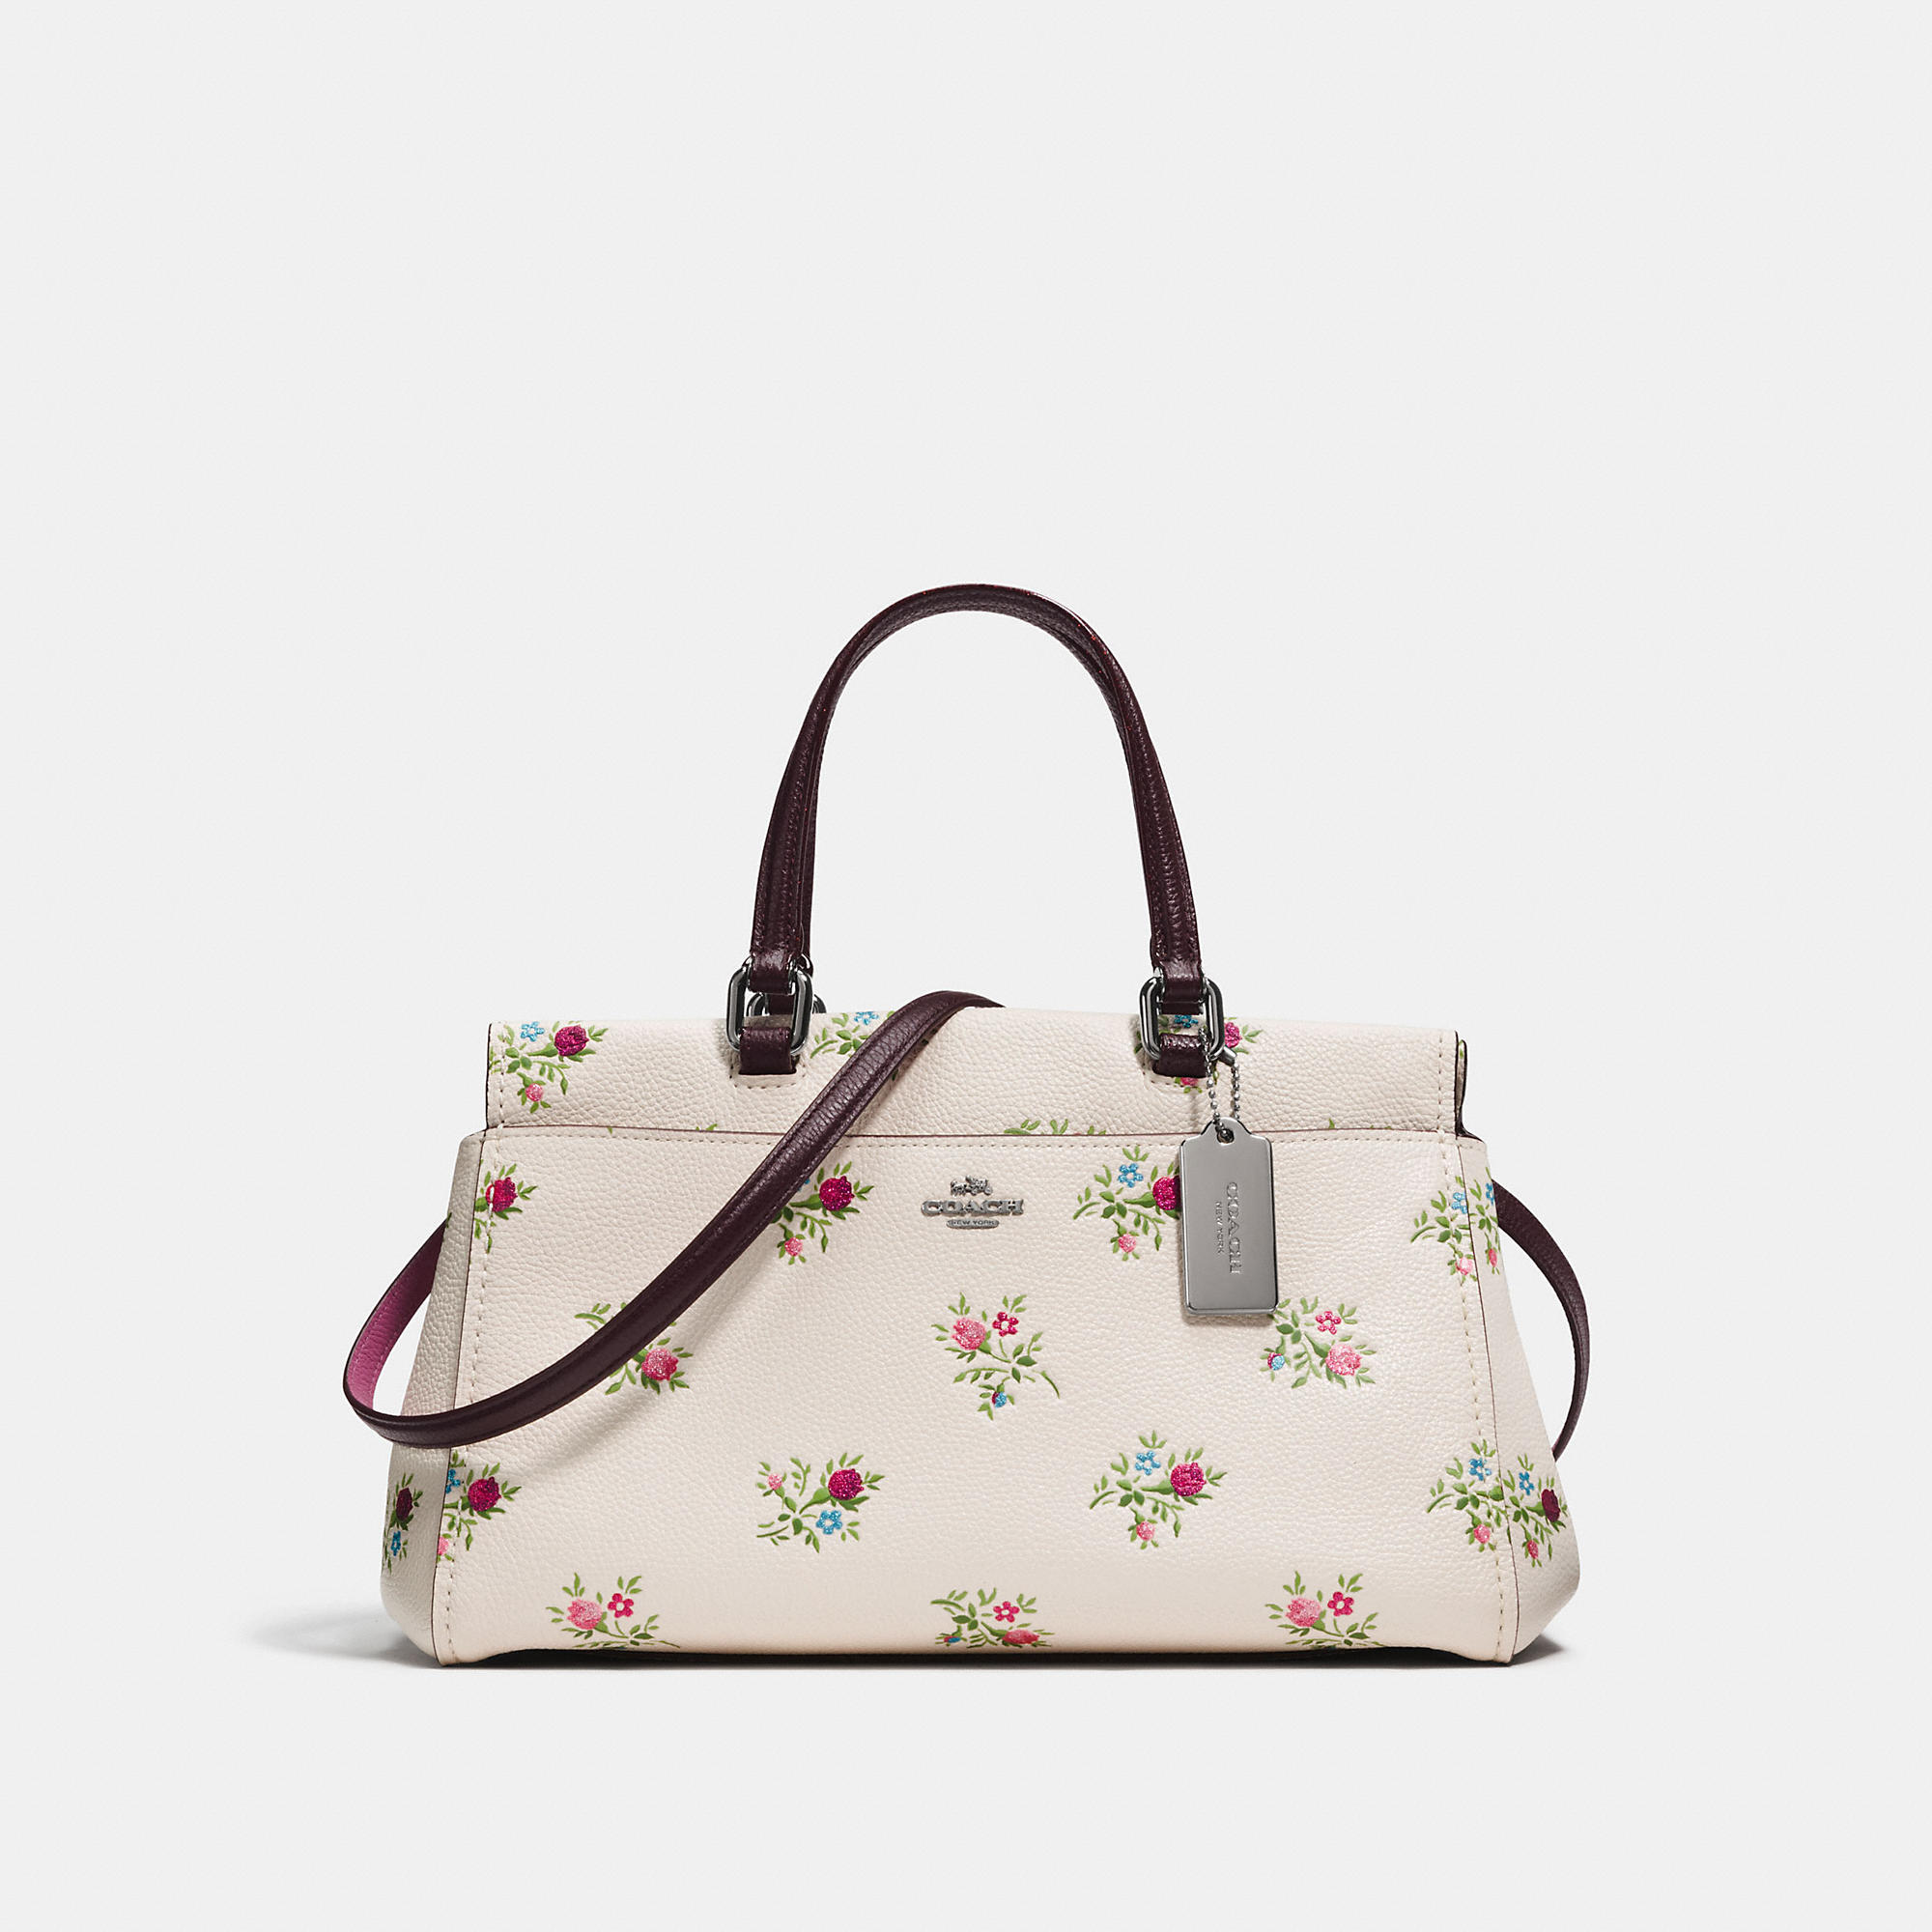 Coach Fulton Satchel With Cross Stitch Floral Print